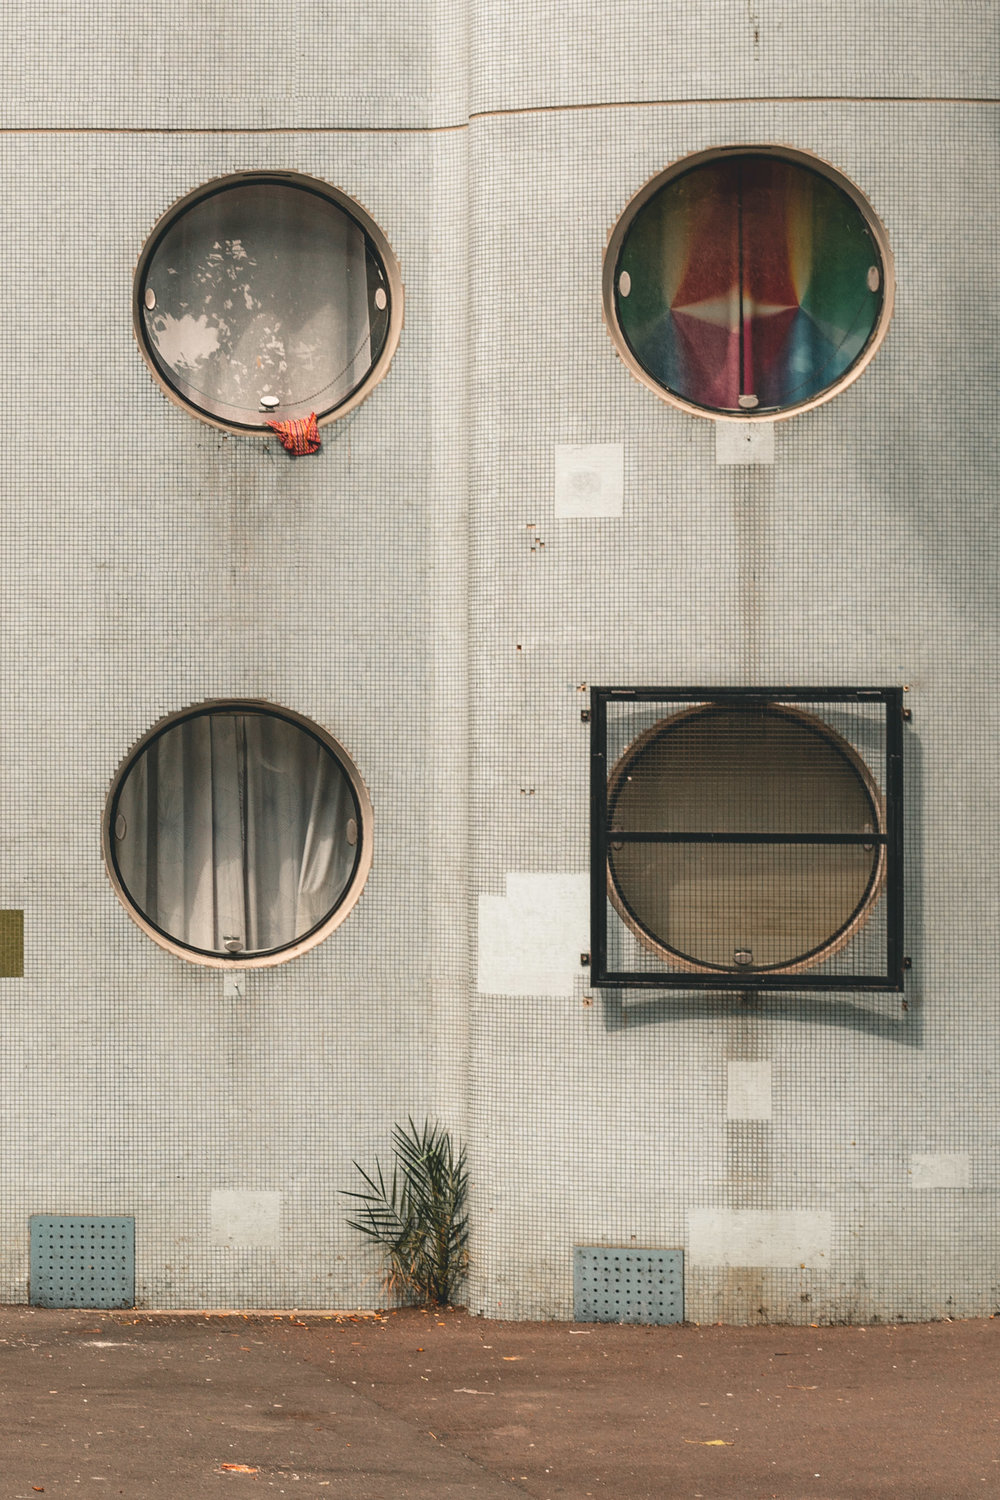 Architecture photograph detail series of the Tours Aillaud, Nanterre. Circular openings, with mosaic tile frontage. By Daniel Walker Photography